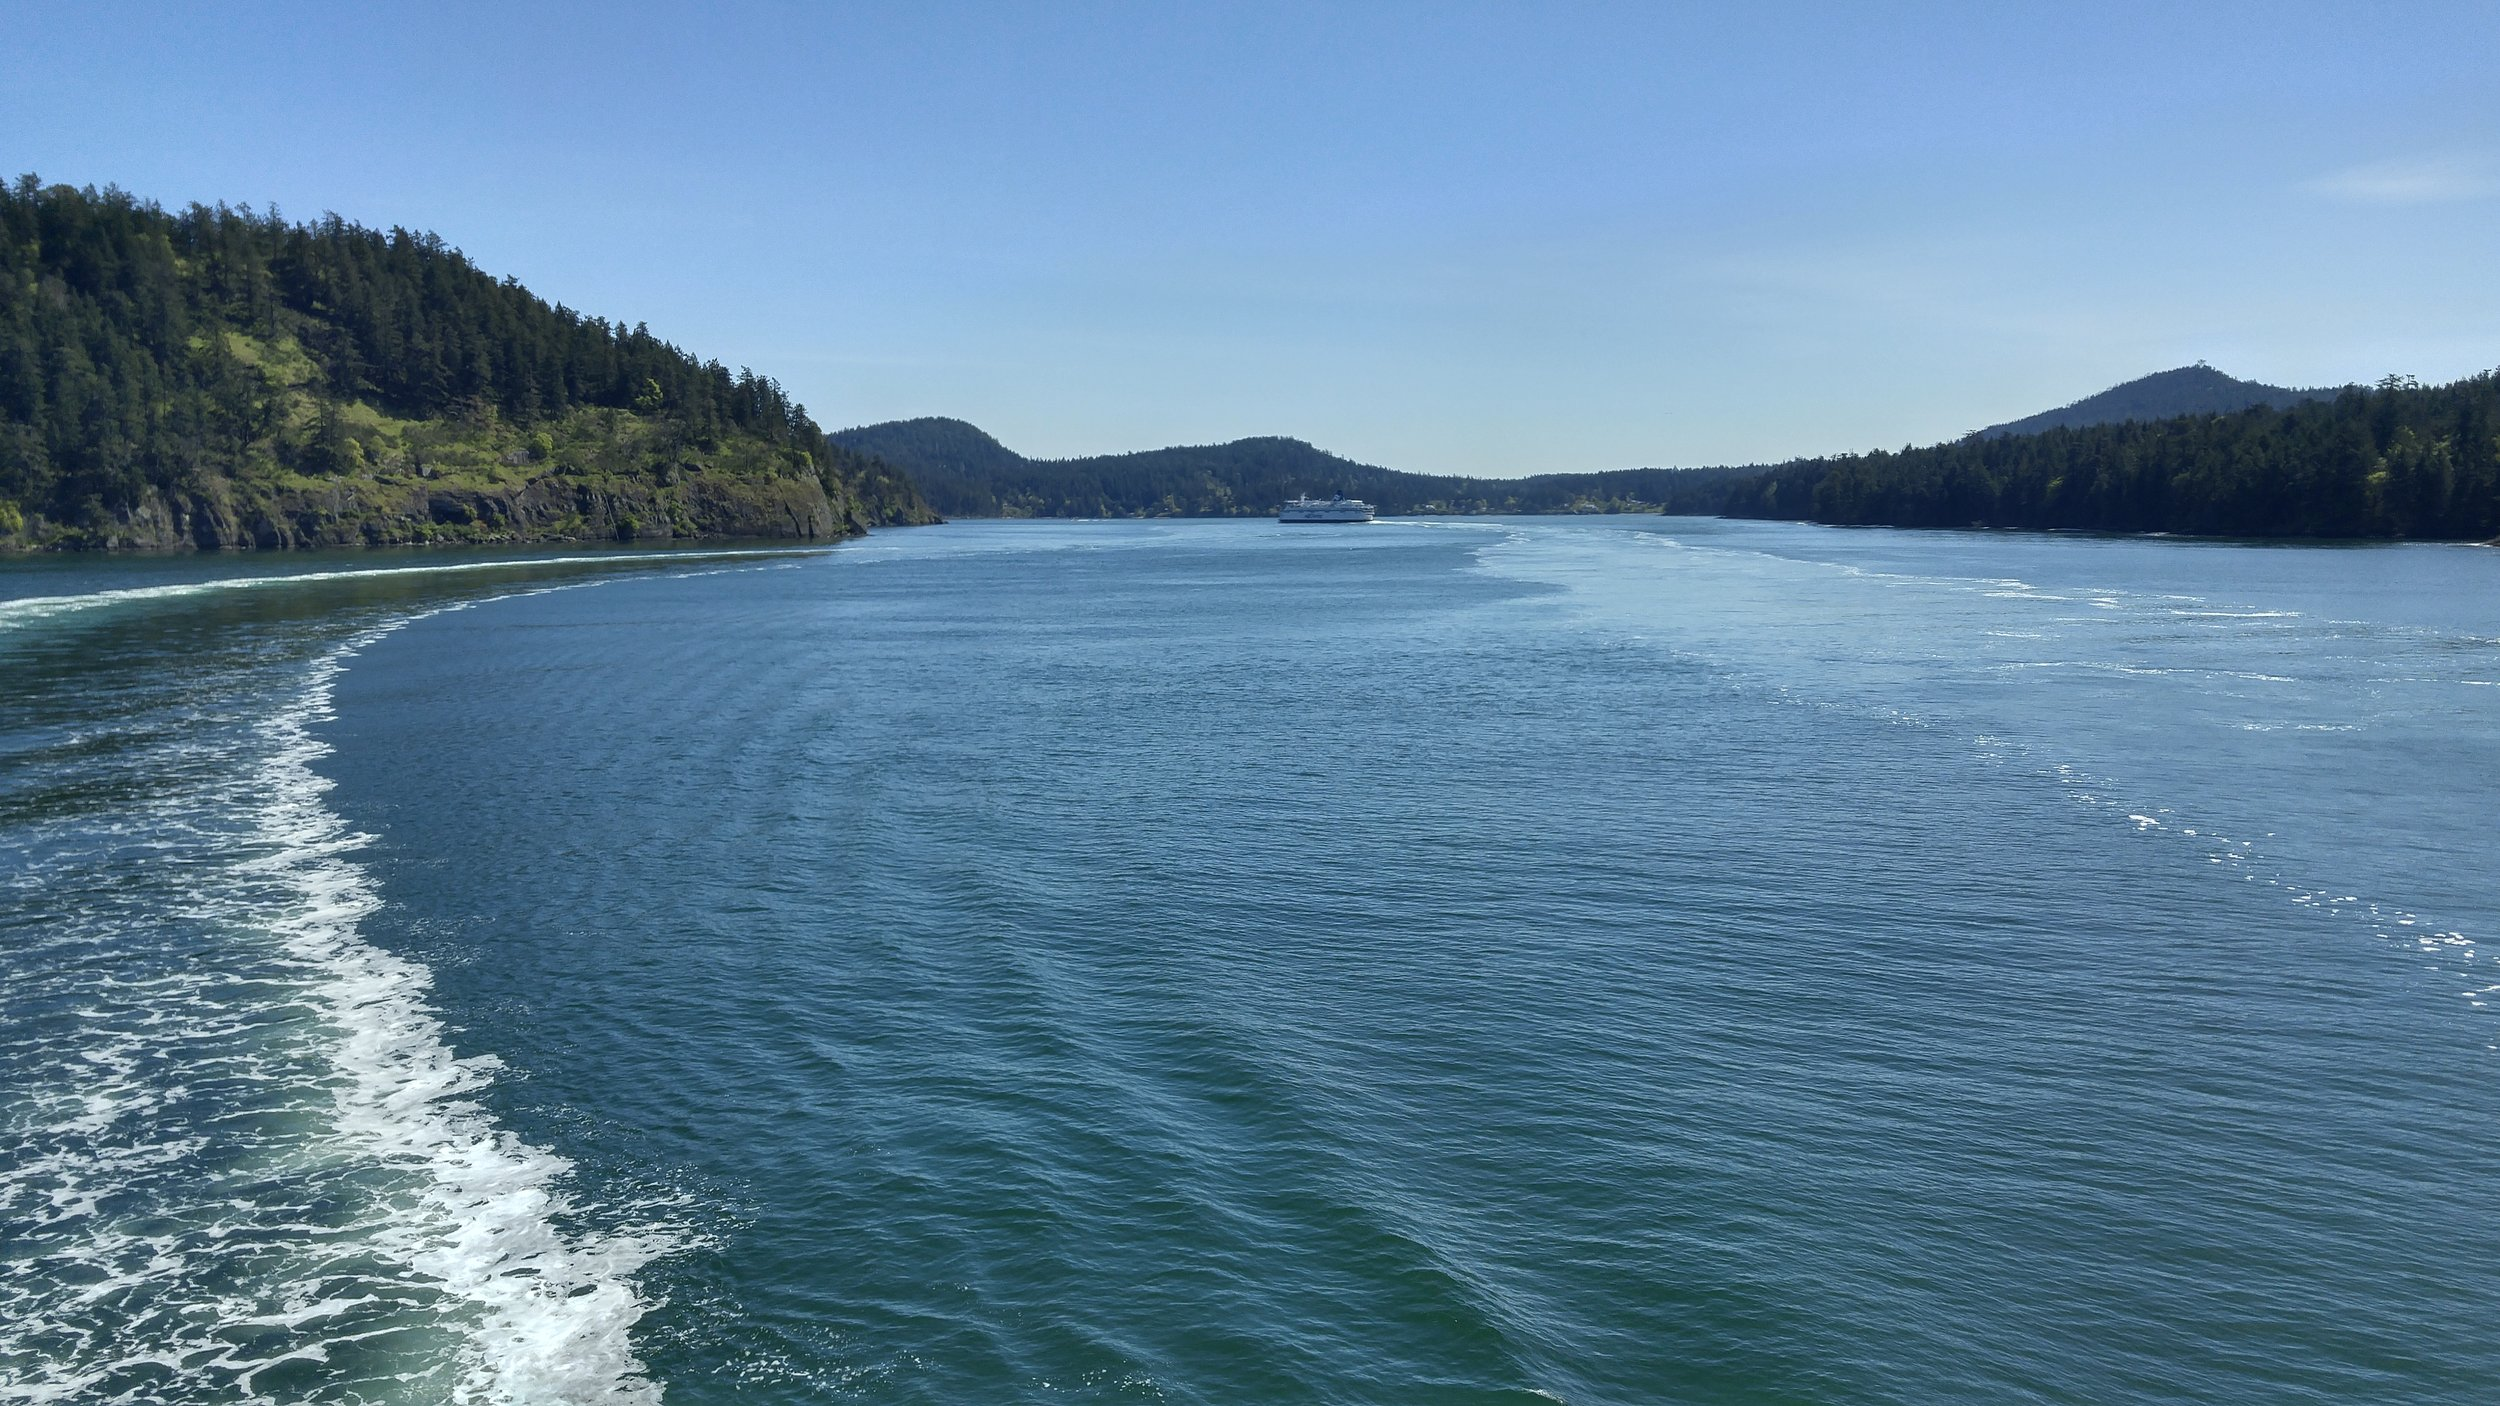 The view from the back of the BC Ferries